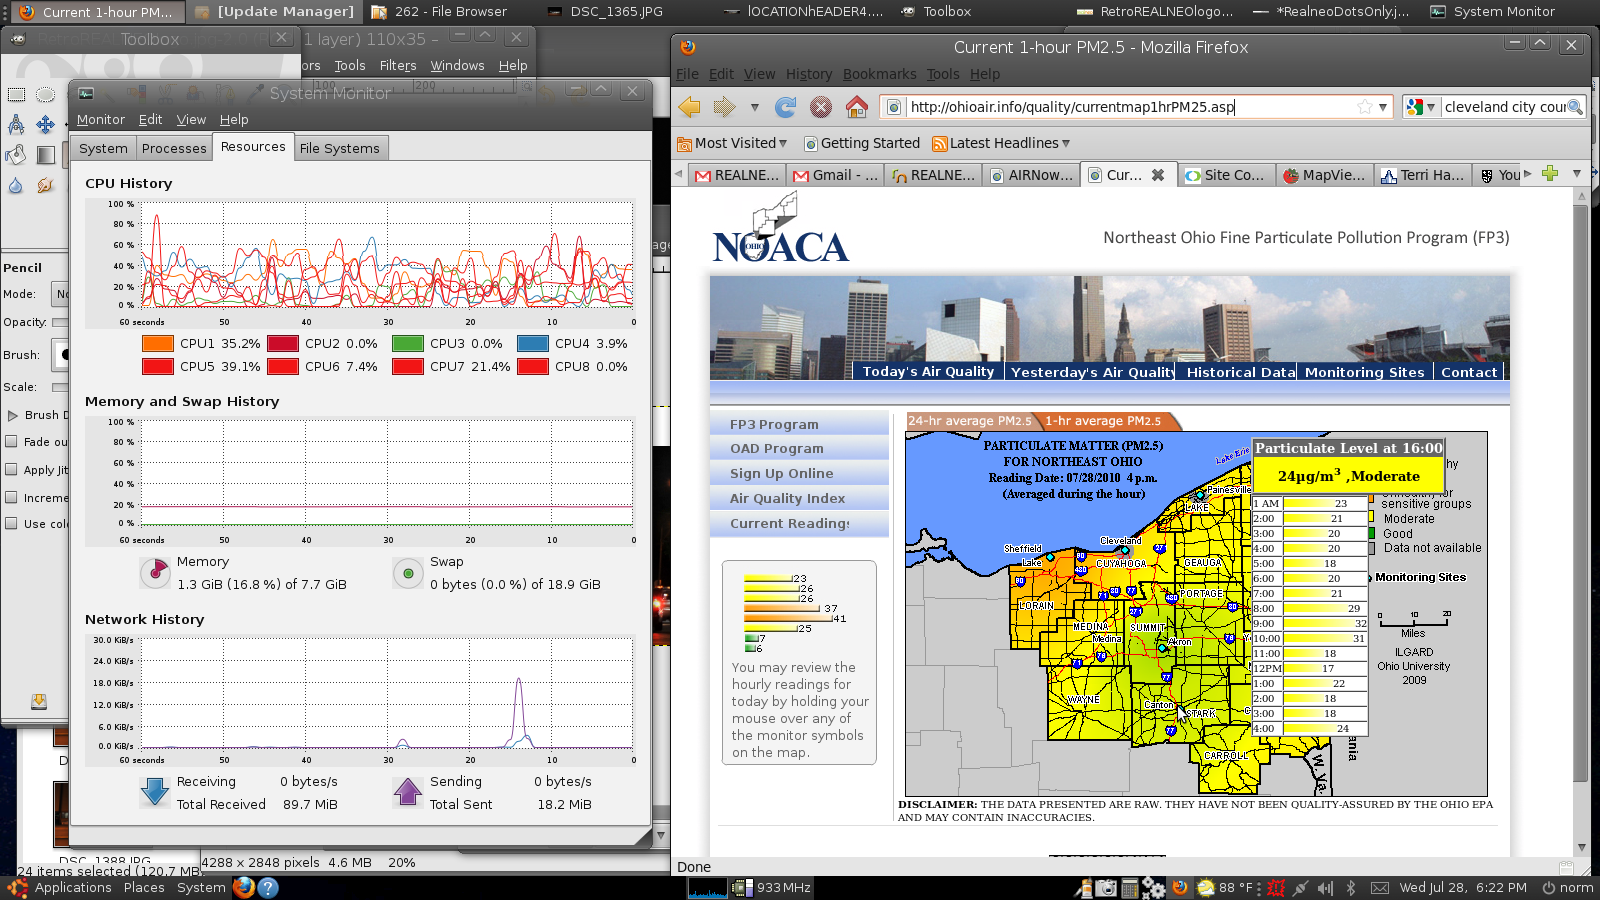 NOACA EPA Air Quality Monitoring for Canton, Ohio